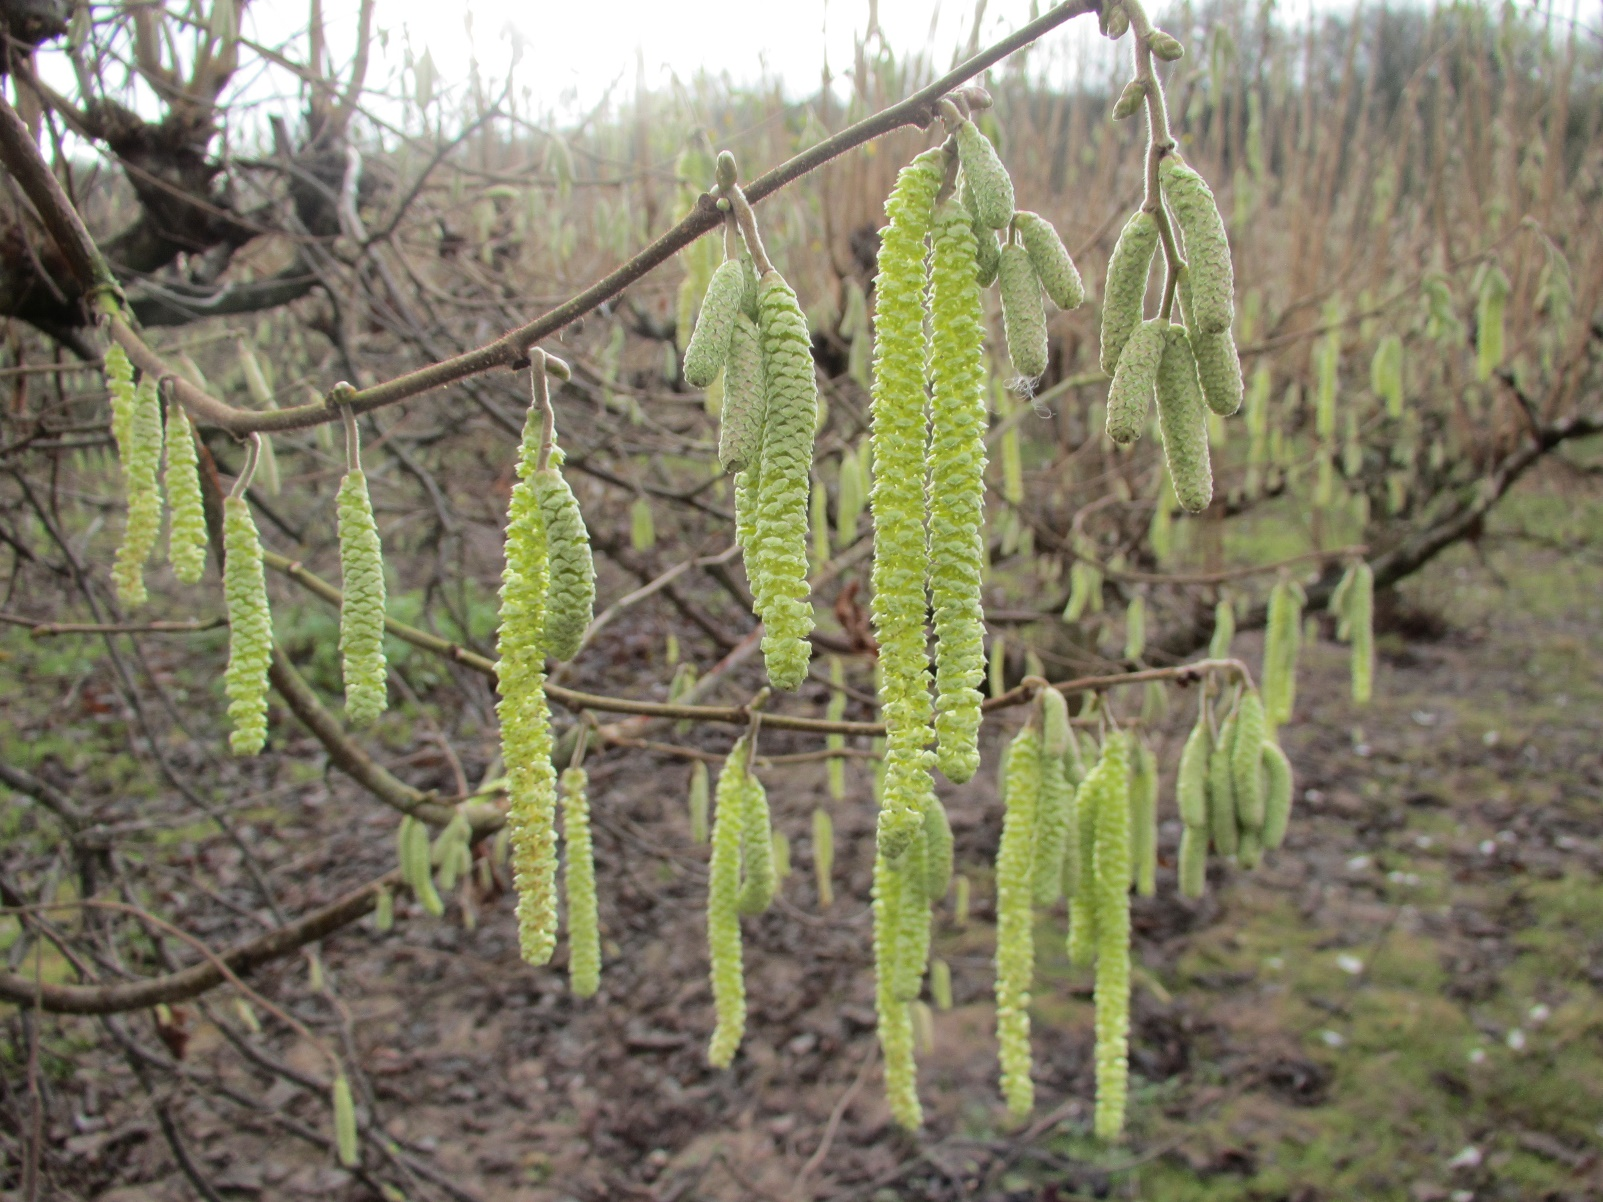 The male flowers, called catkins